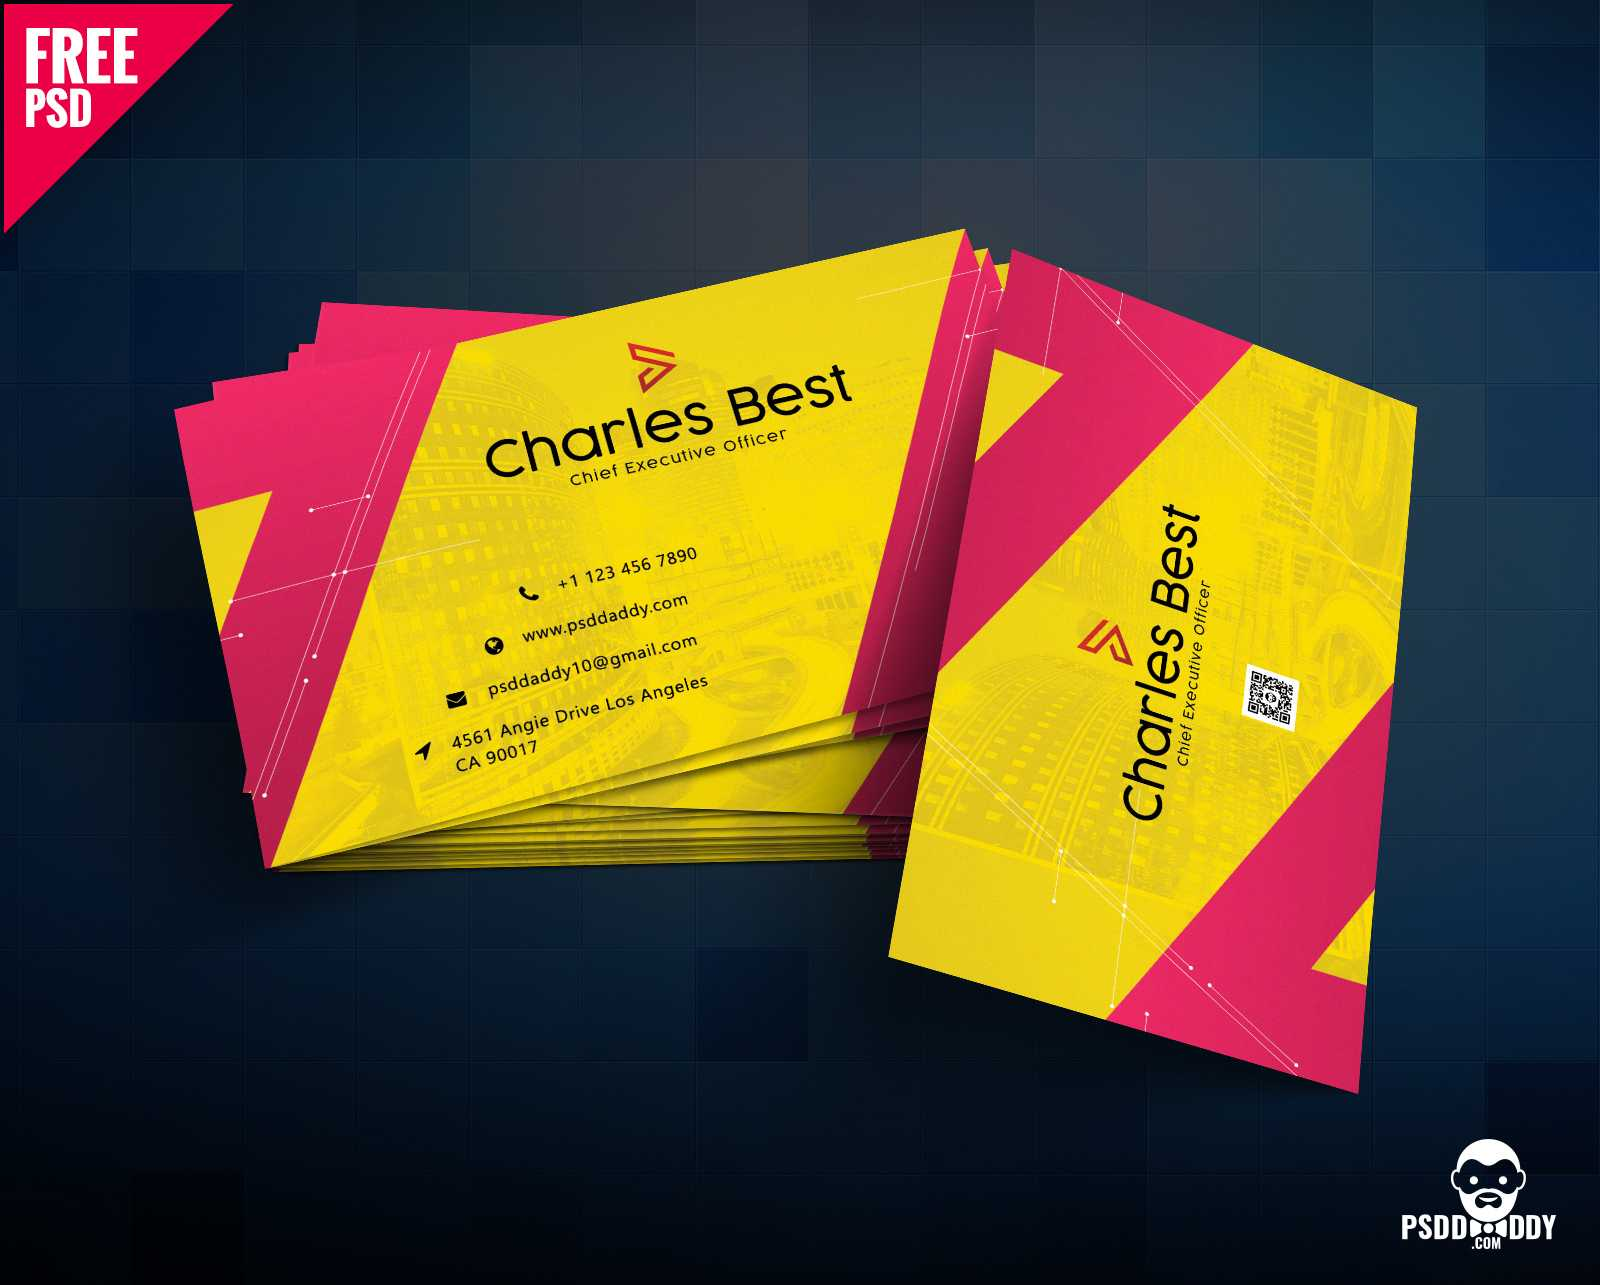 Download] Creative Business Card Free Psd | Psddaddy Regarding Business Card Size Photoshop Template